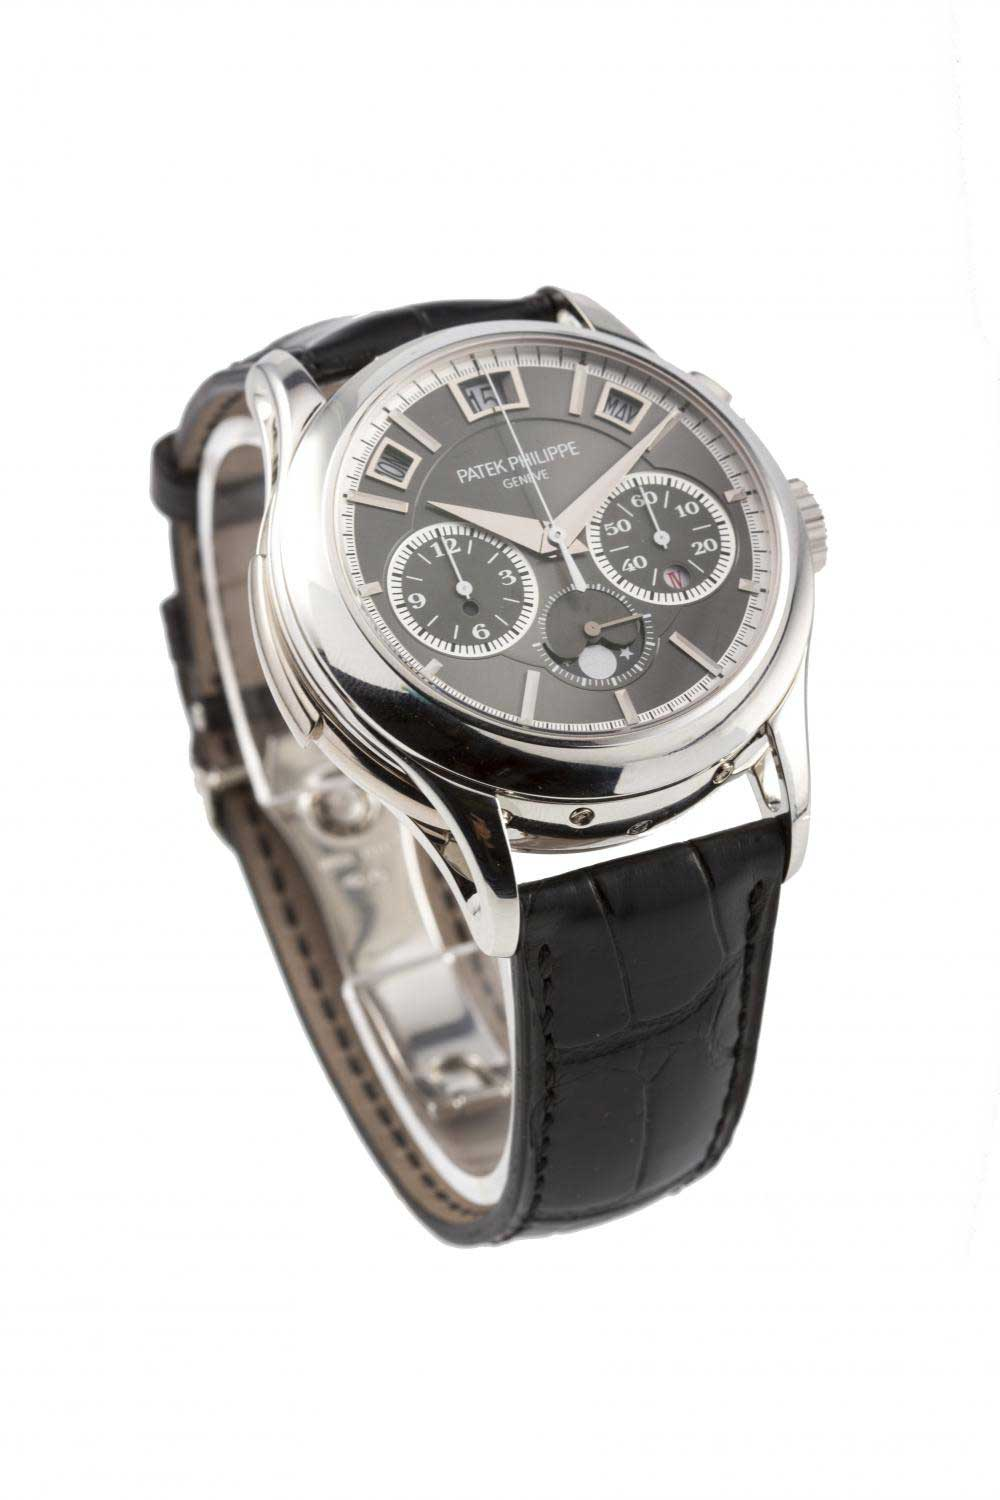 The Patek Philippe ref. 5208, which allegedly was meant for Vladimir Putin